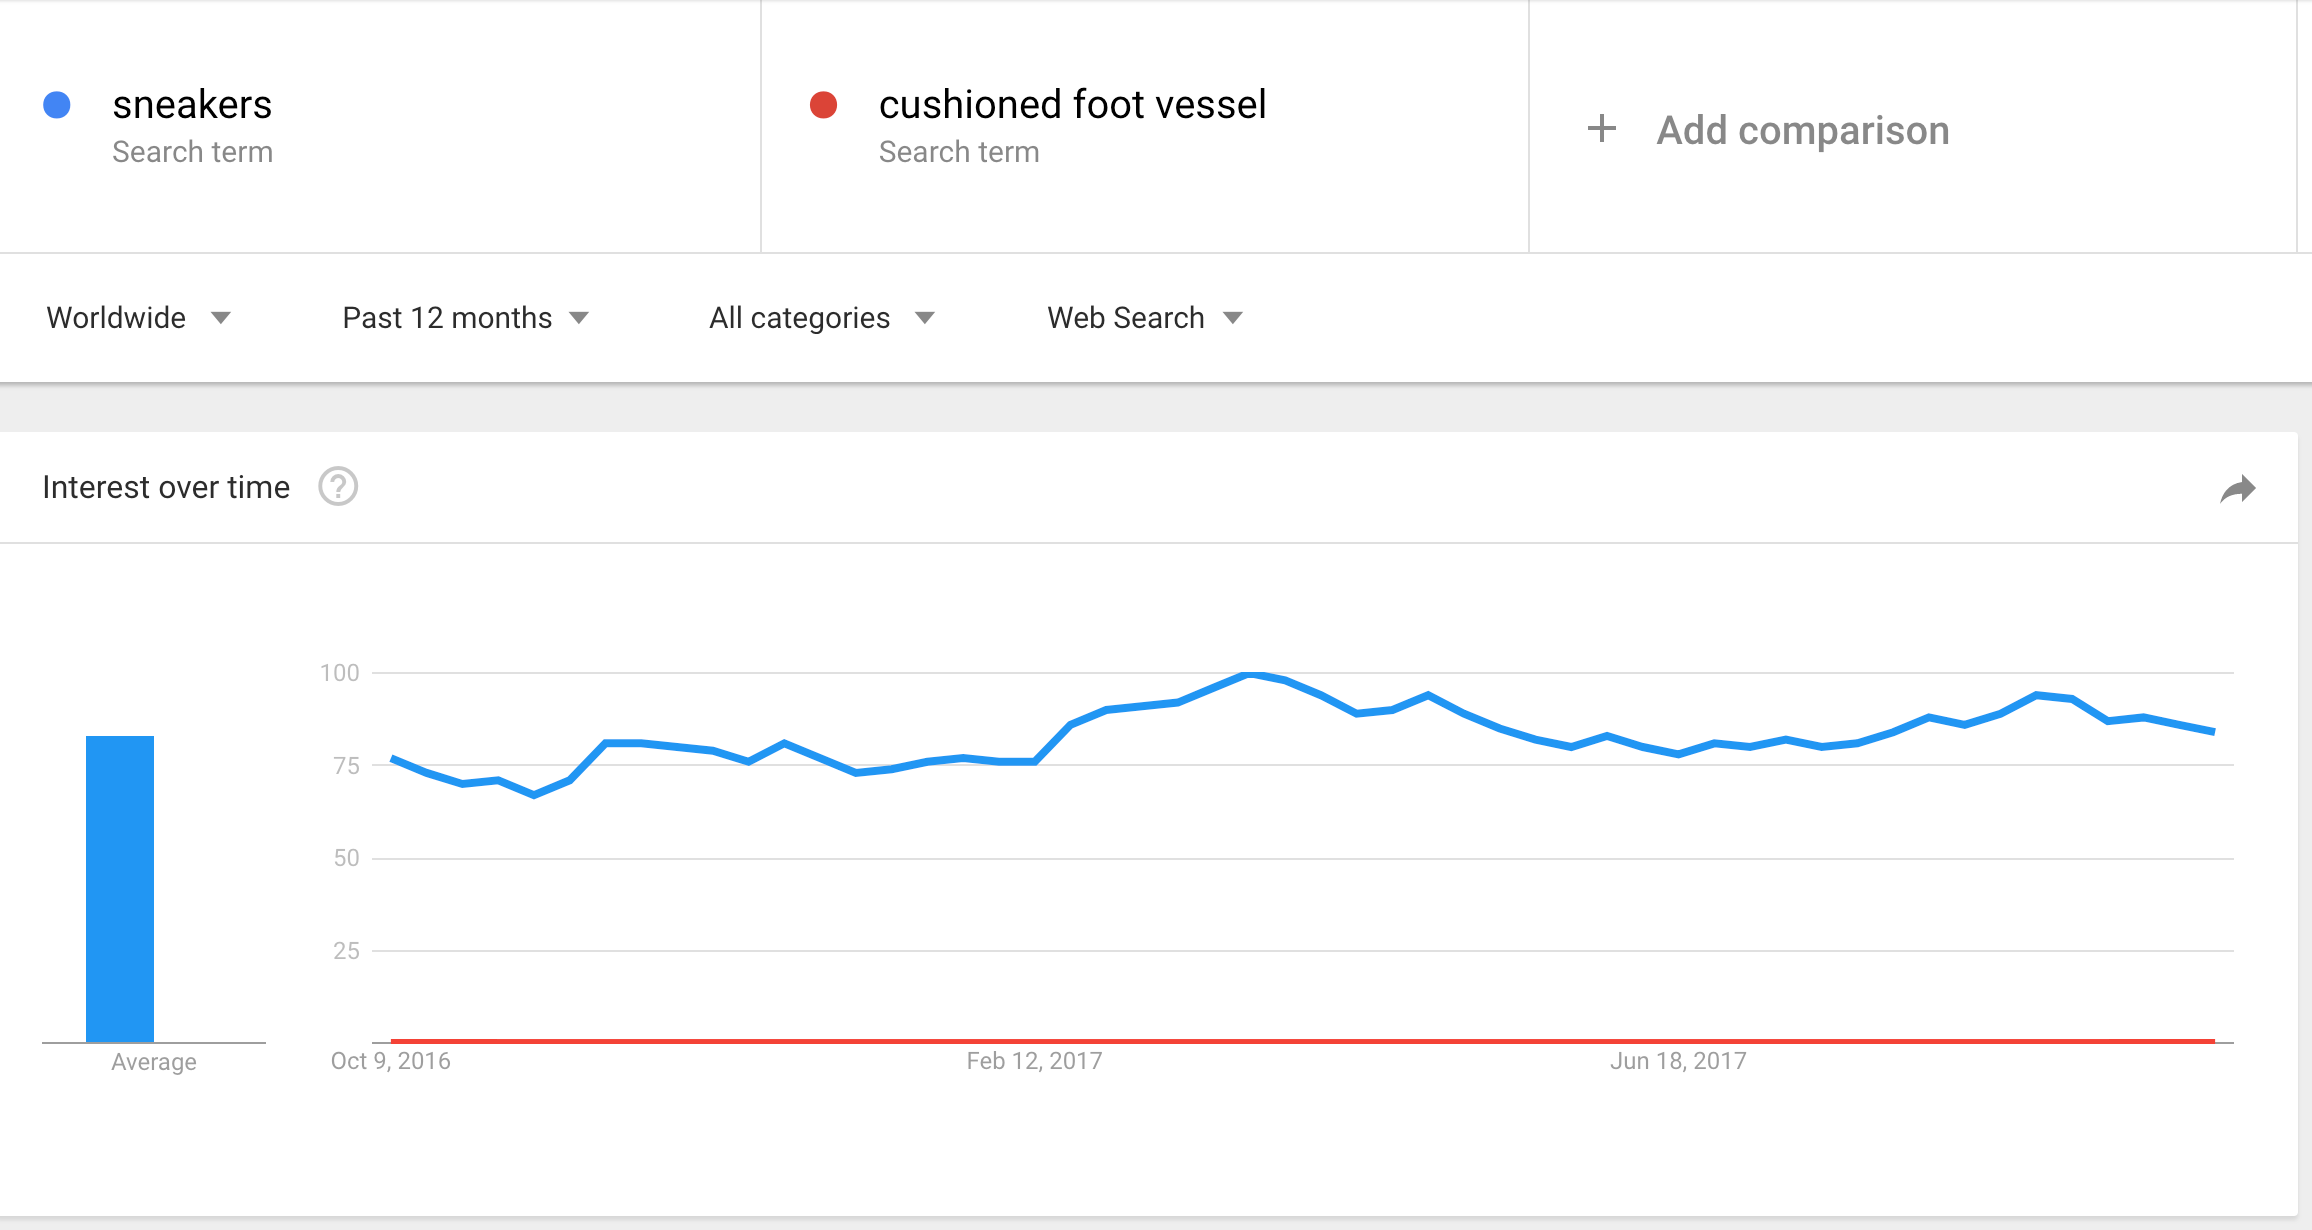 sneakers-search-volume-google-trends